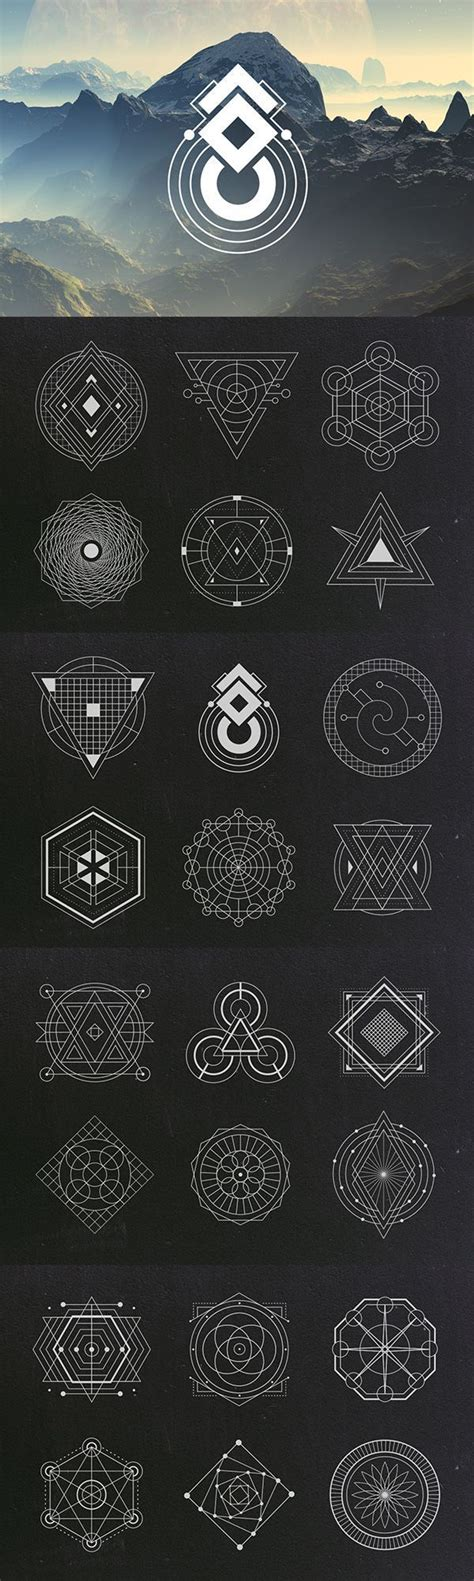 niche design meaning 17 best ideas about sacred geometry symbols on pinterest